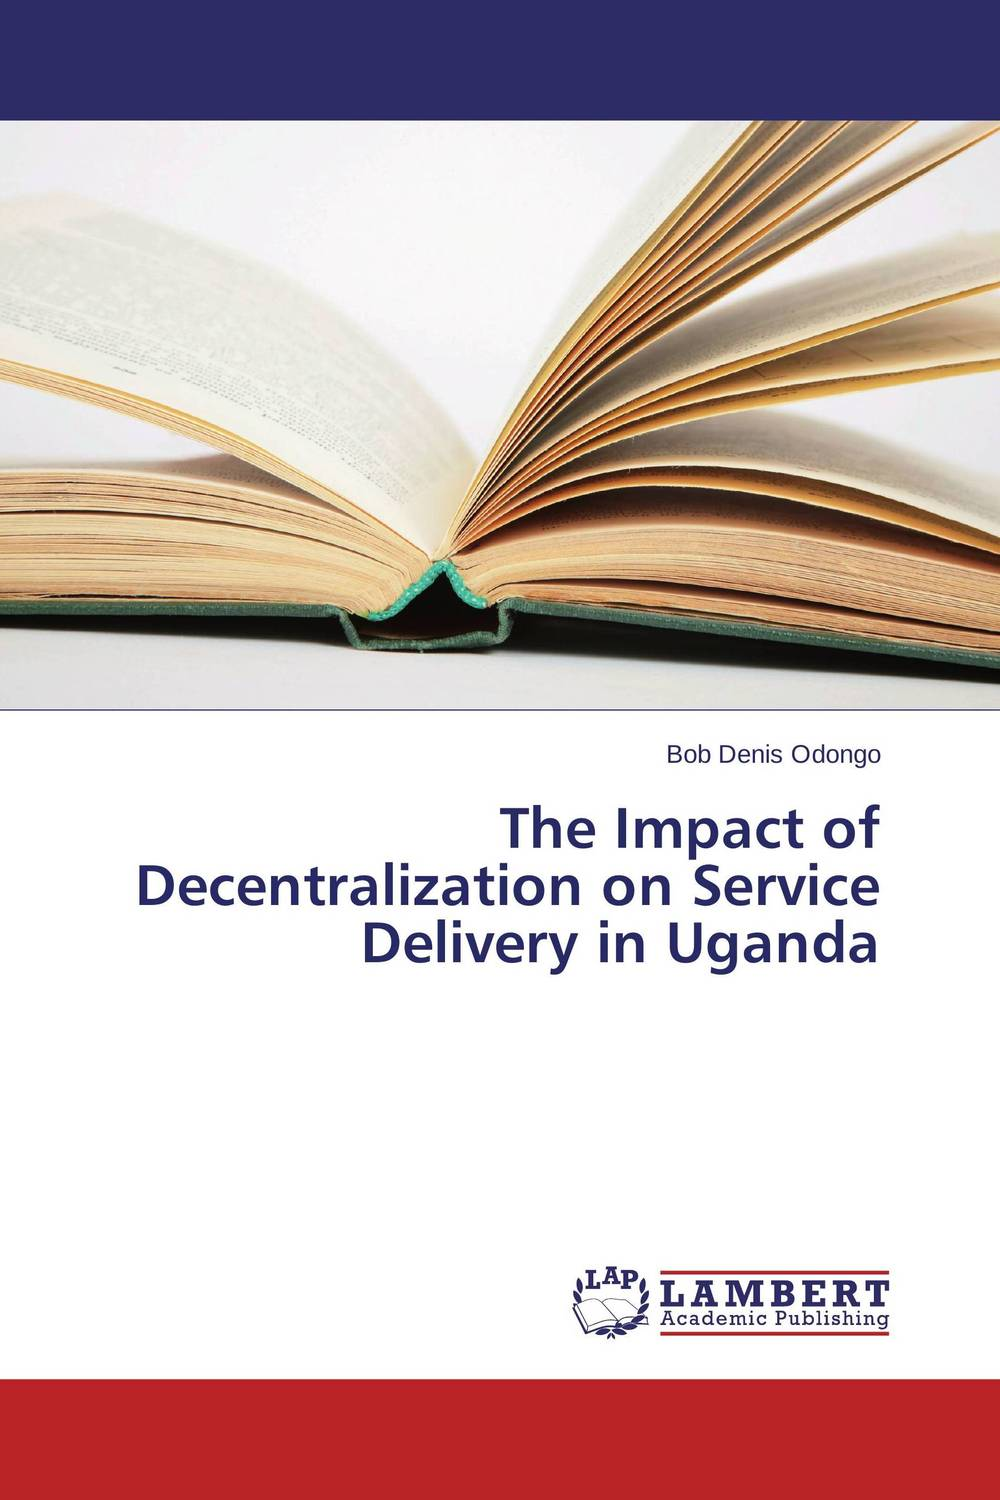 The Impact of Decentralization on Service Delivery in Uganda decentralization and service delivery in uganda